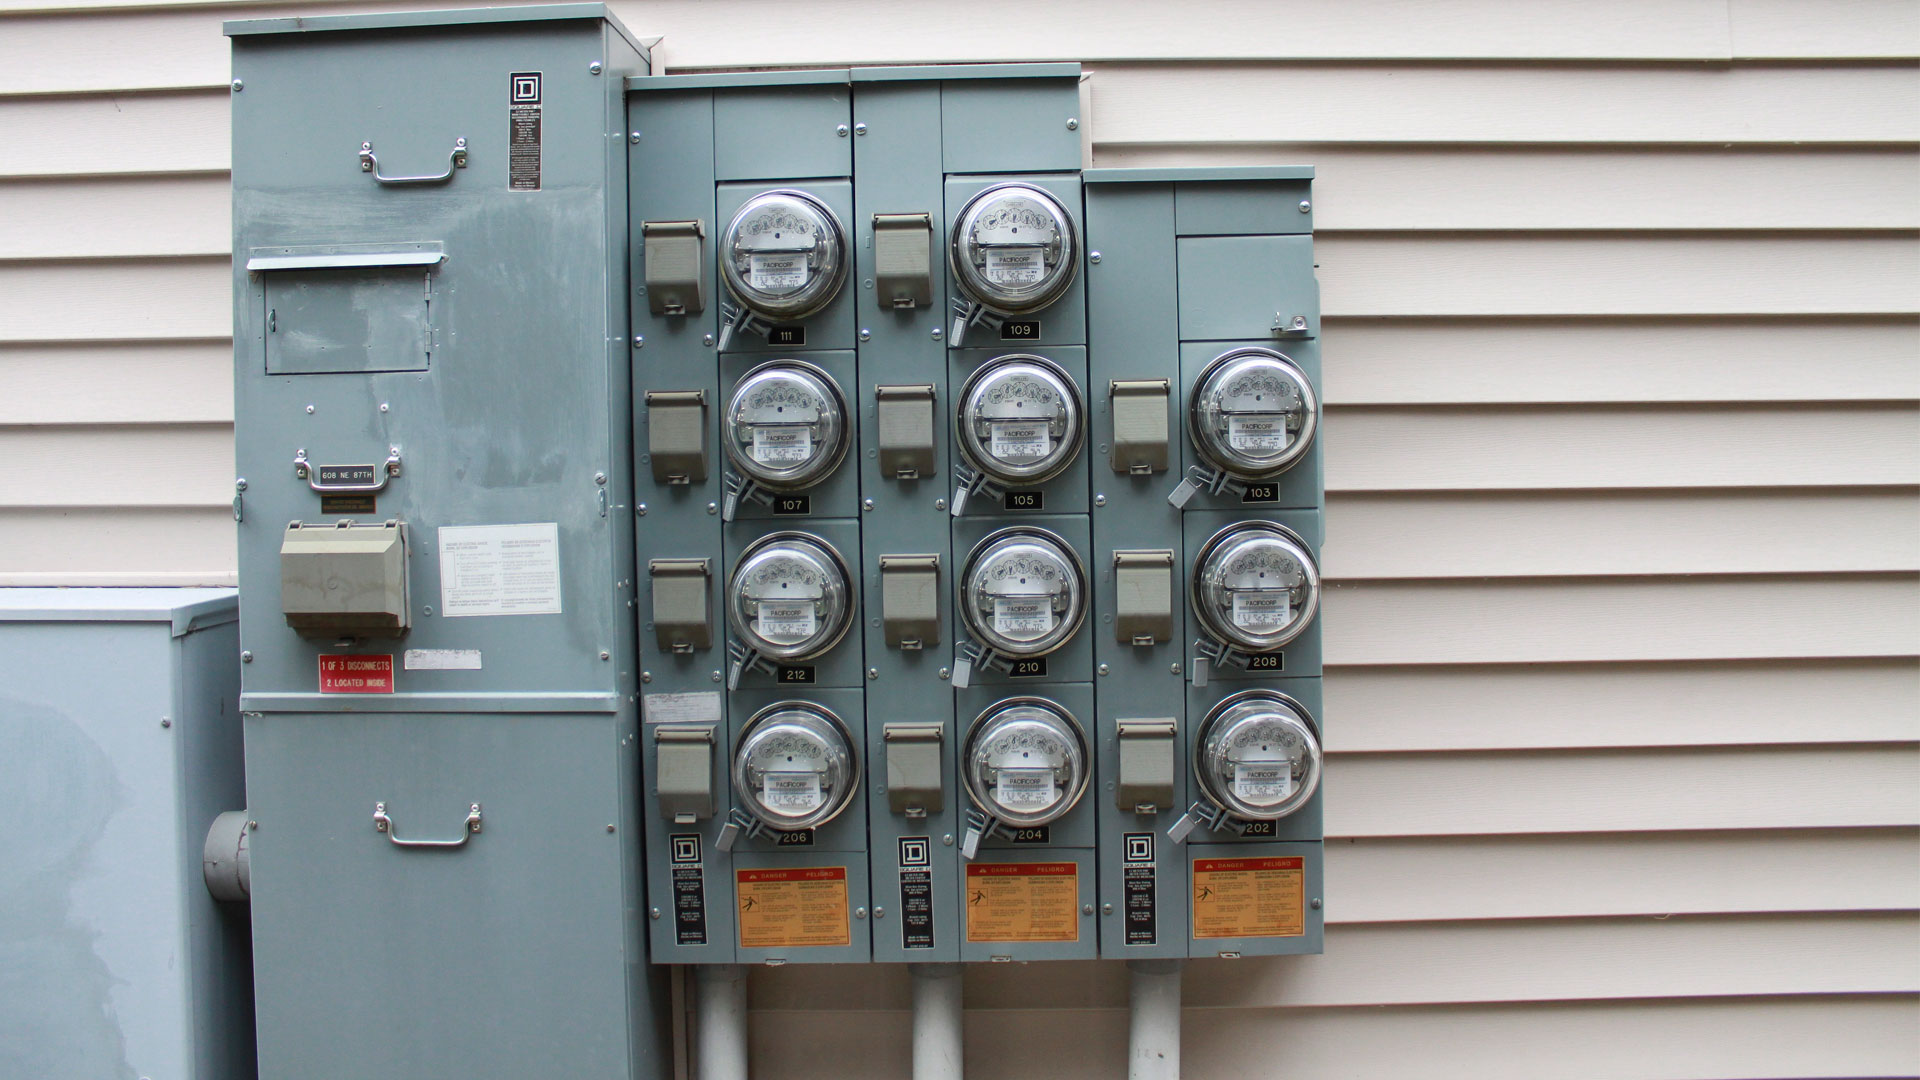 MT Private Utility Locating Services , LLC